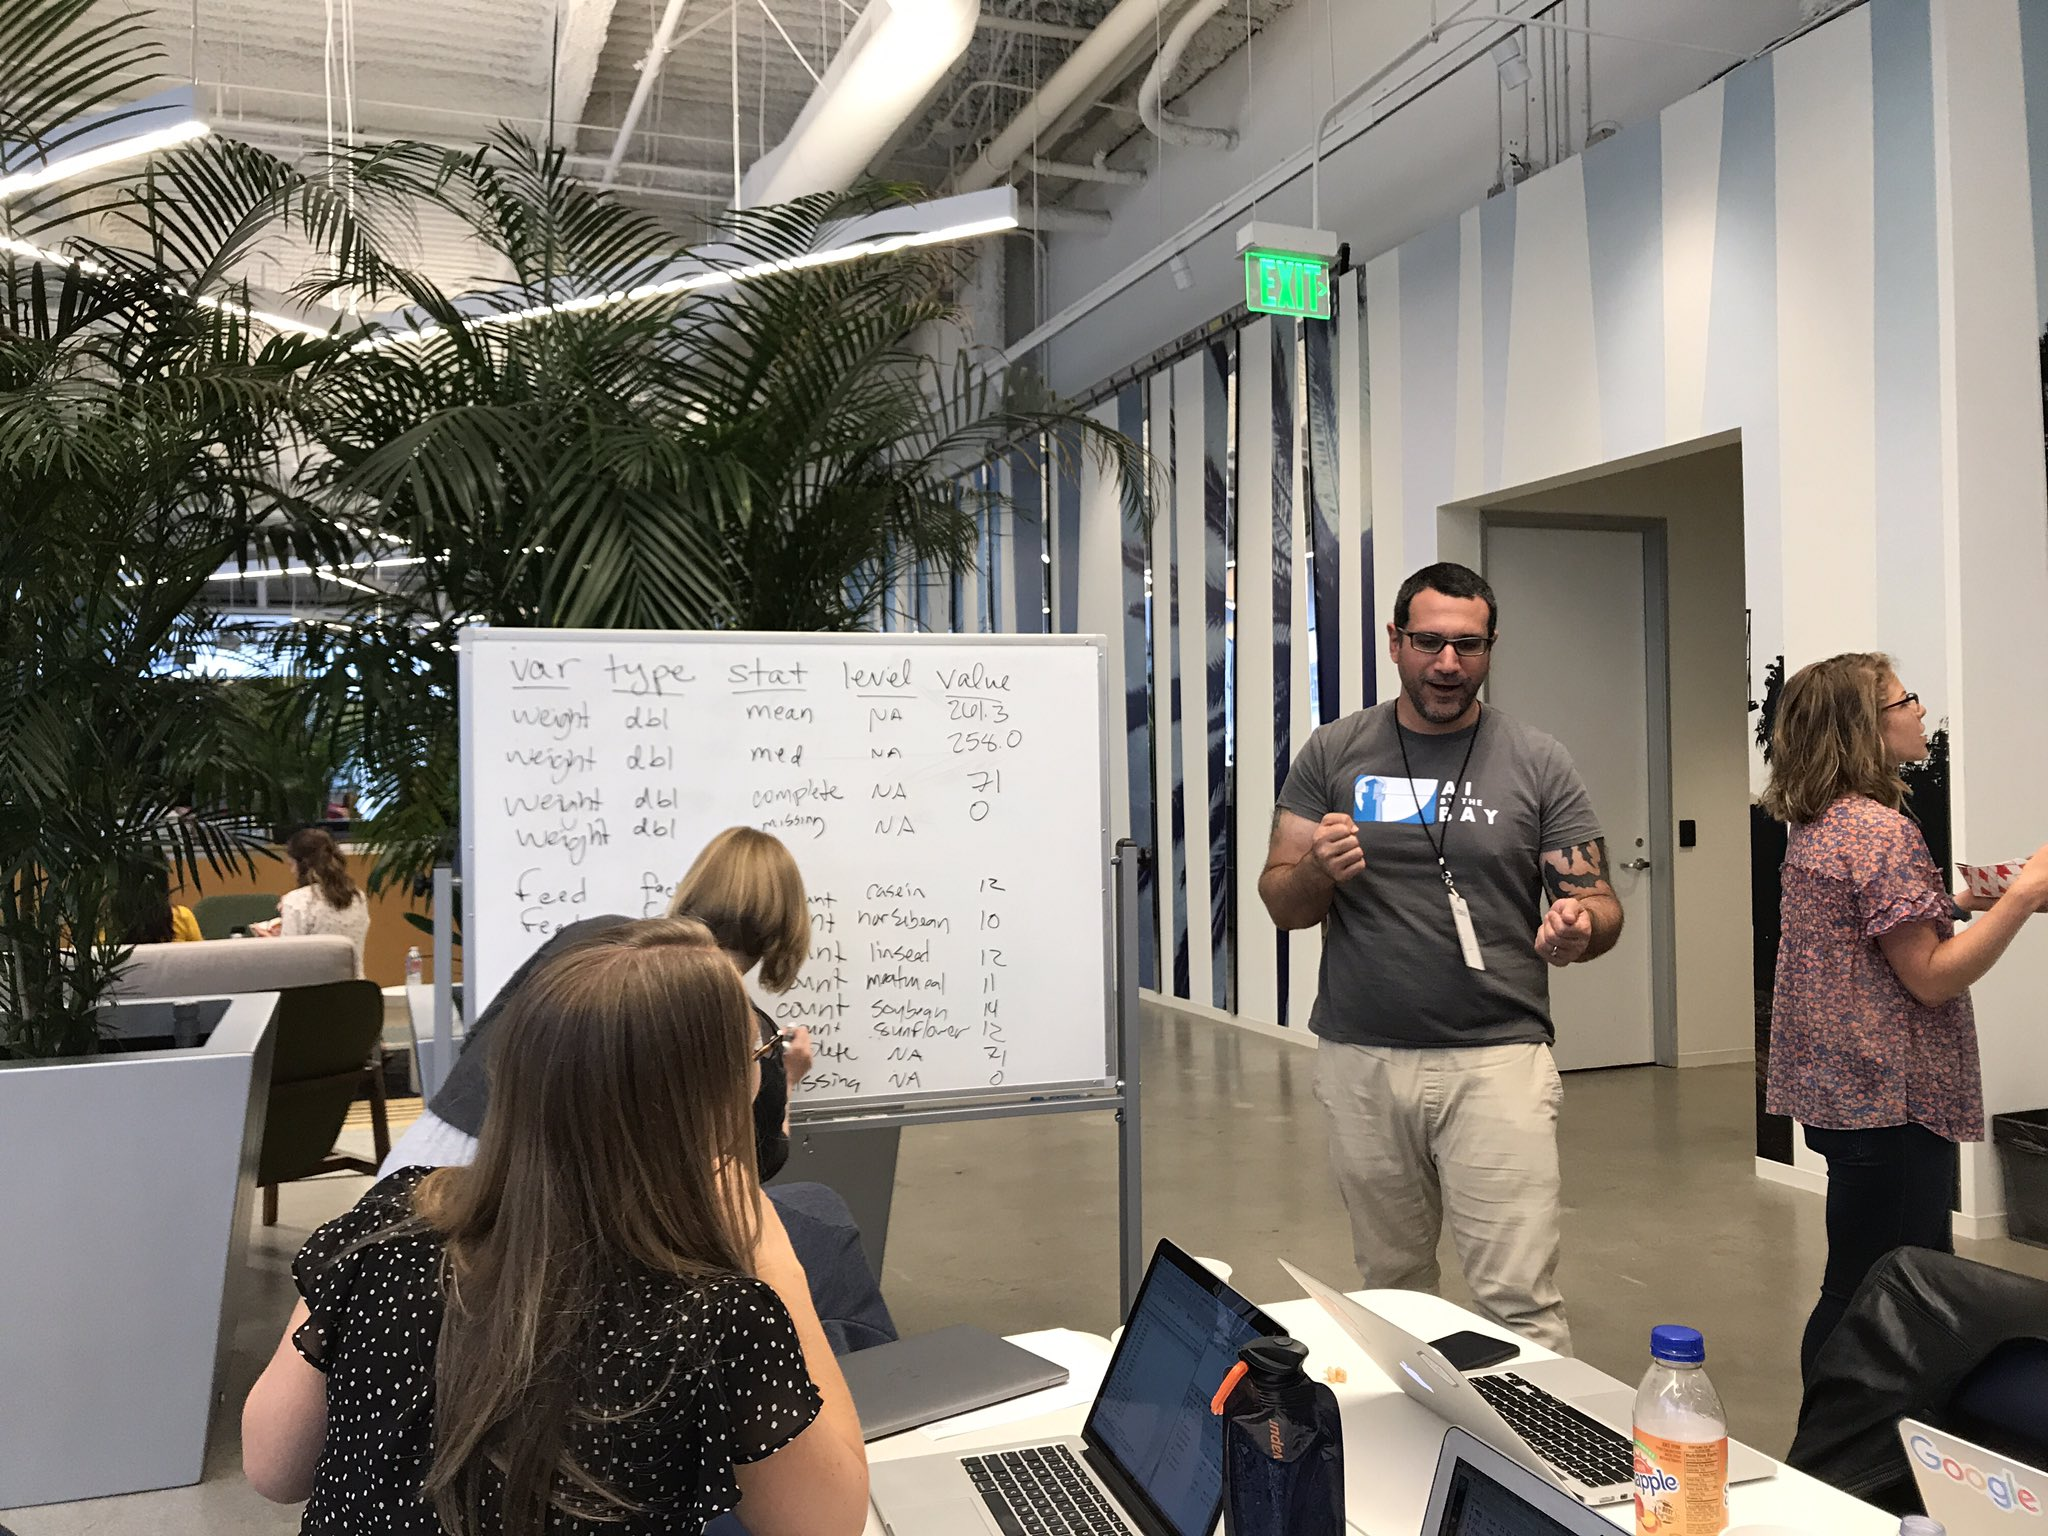 While ideas fly, @AmeliaMN organizes them and @earino provides a side of #dadmoves #teamskimr #runconf17 https://t.co/oEQm2Z9h7e